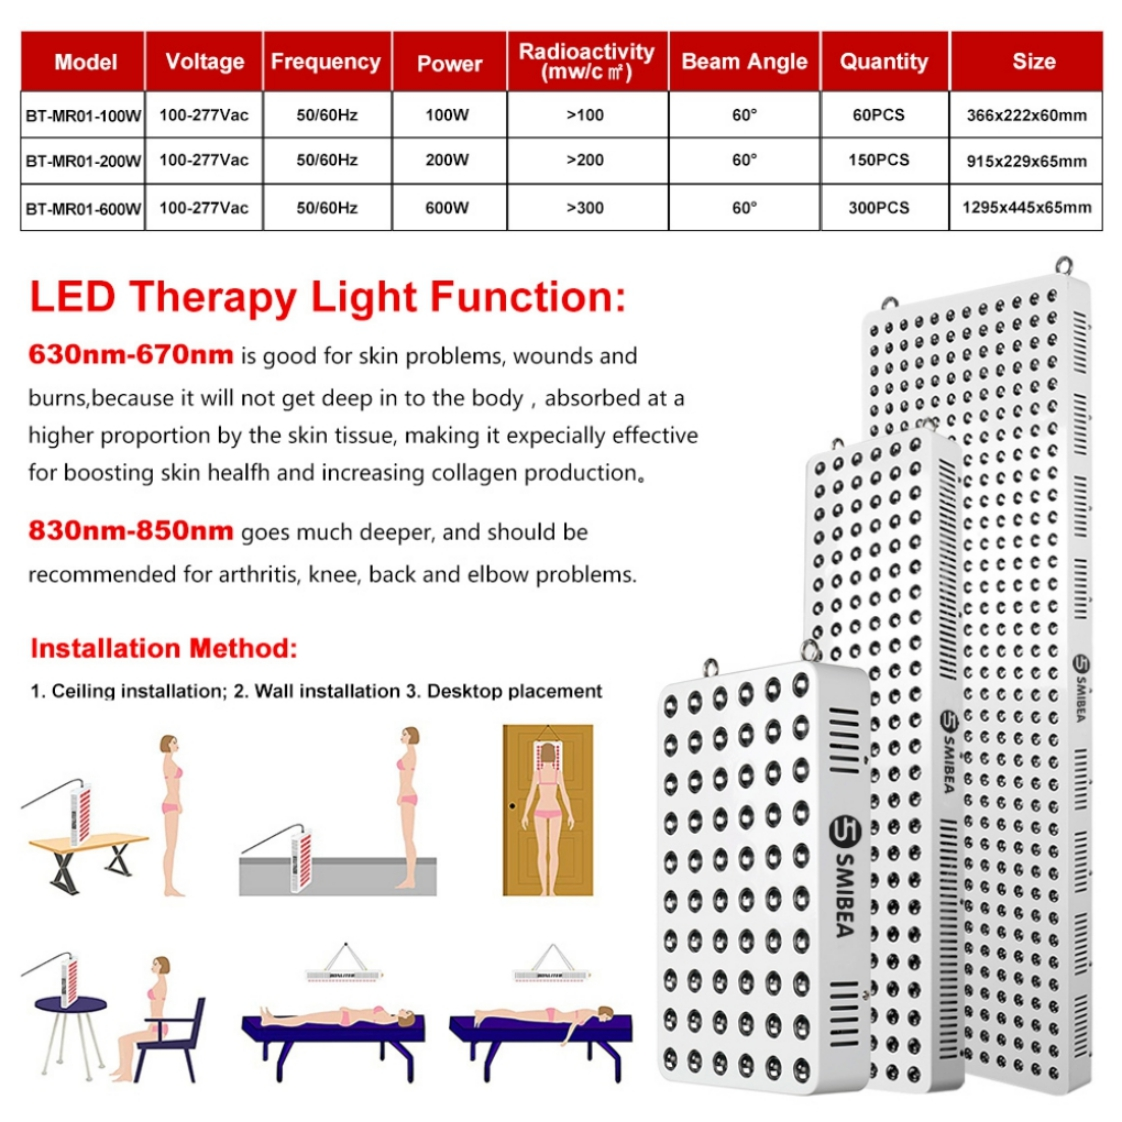 200W Red LED Light Therapy Lamp For Recovering